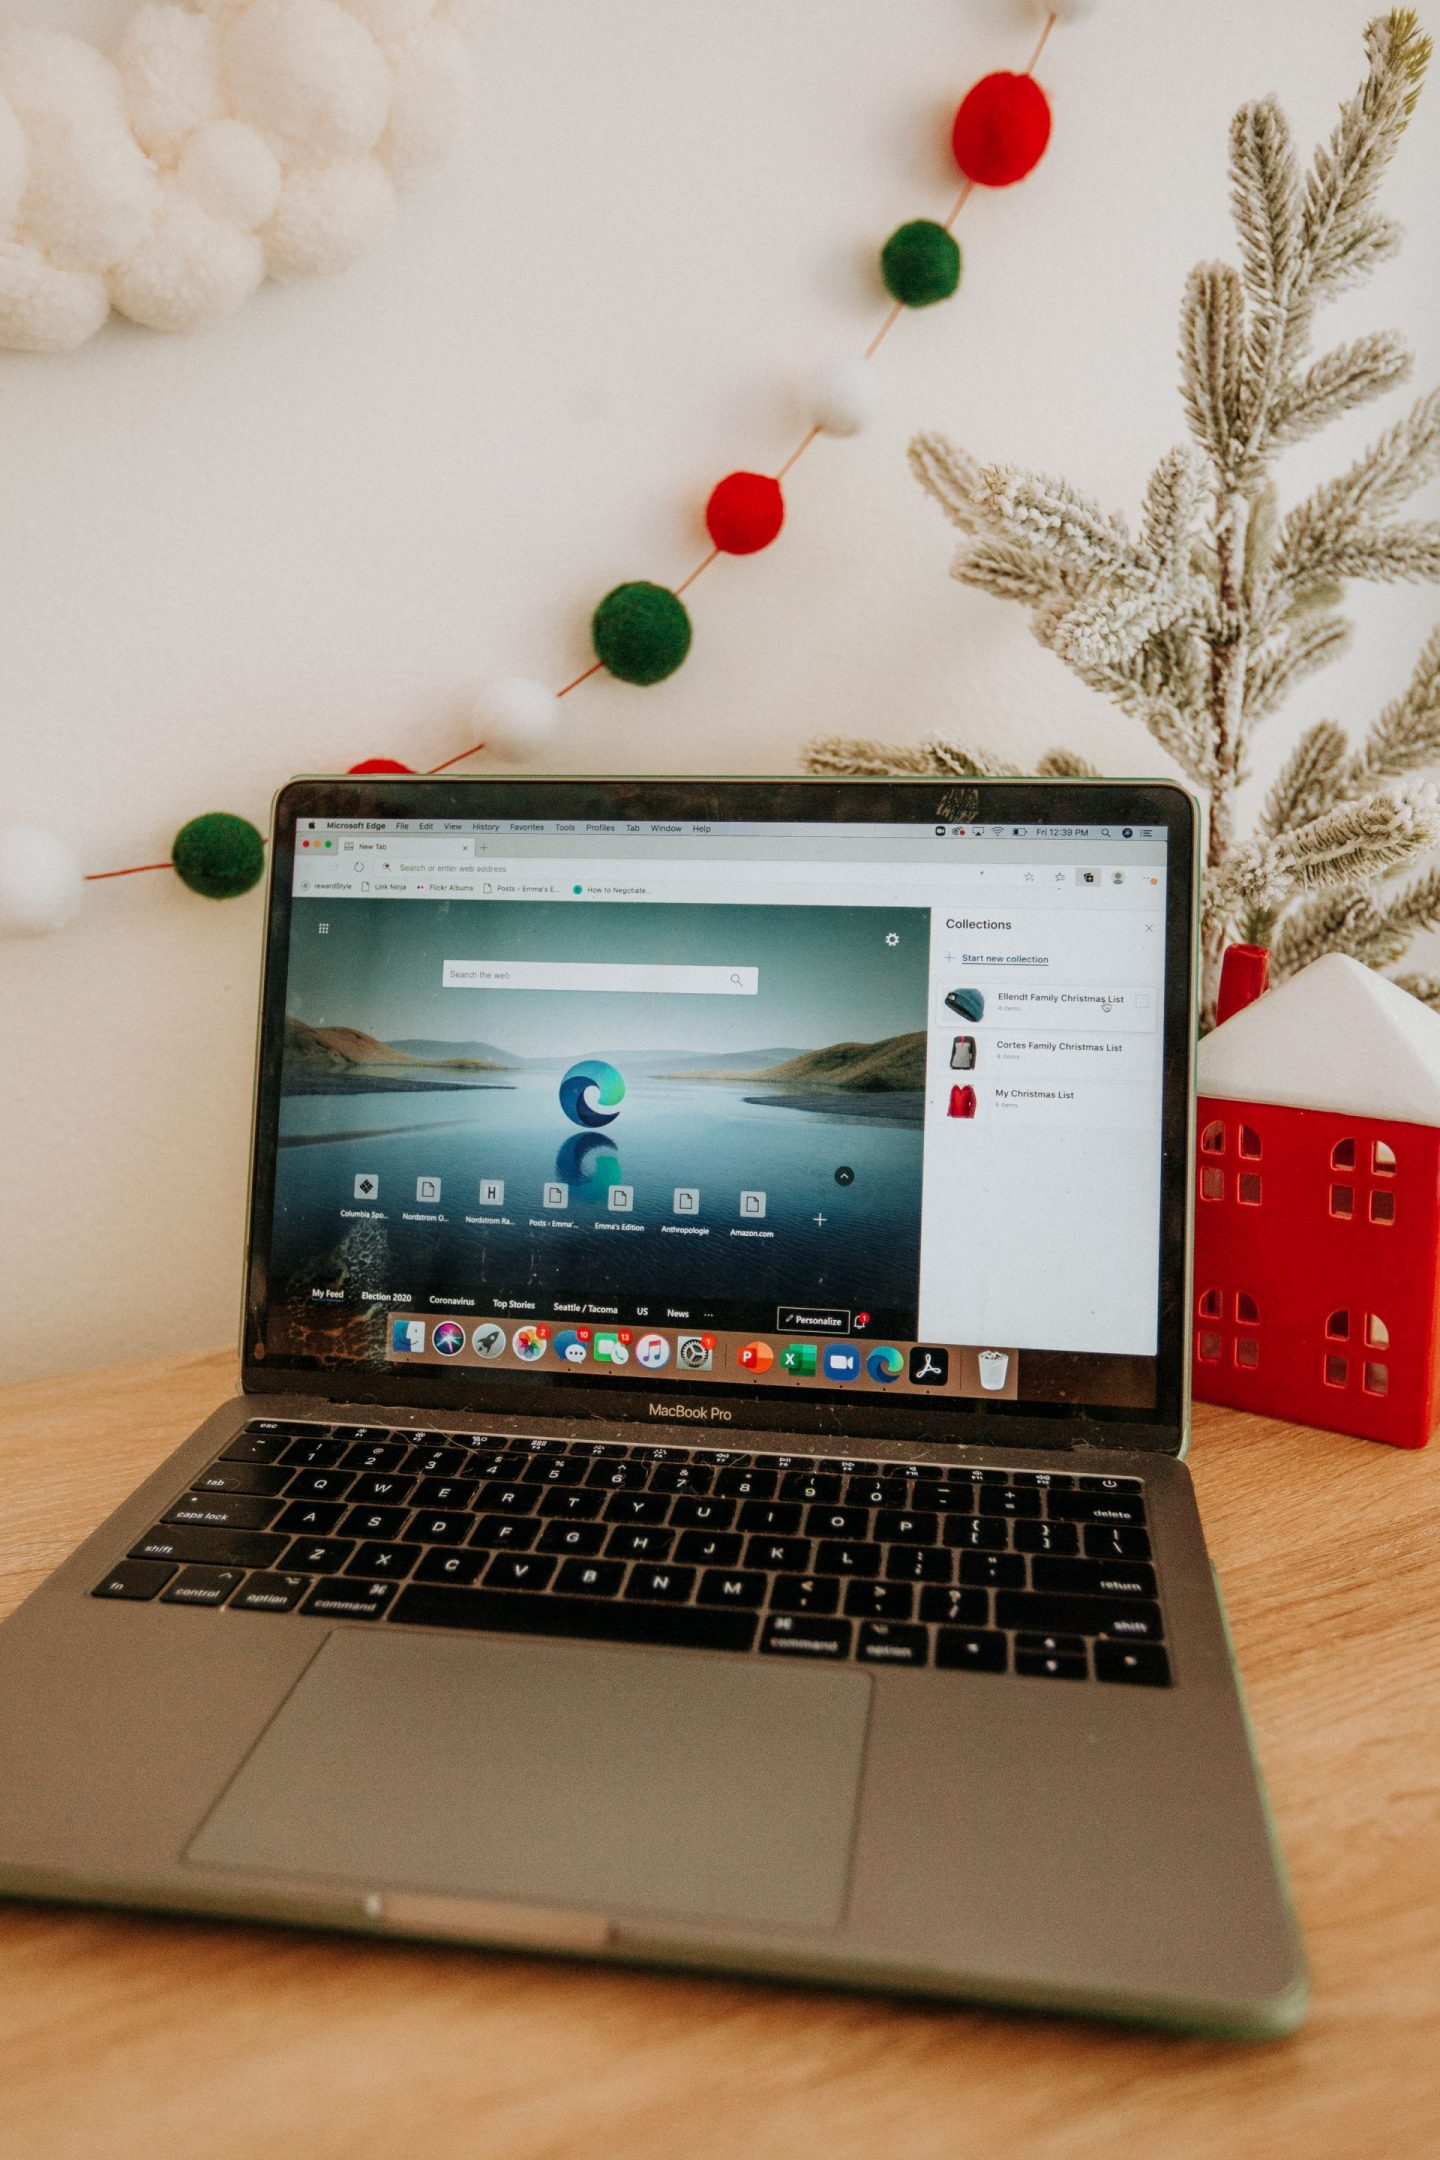 Online shopping this holiday season – tips for Christmas shopping – online shopping tips for the holidays – how to shop online for the holiday season with Microsoft Edge – image from www.emmasedition.com – copyright @emmasedition